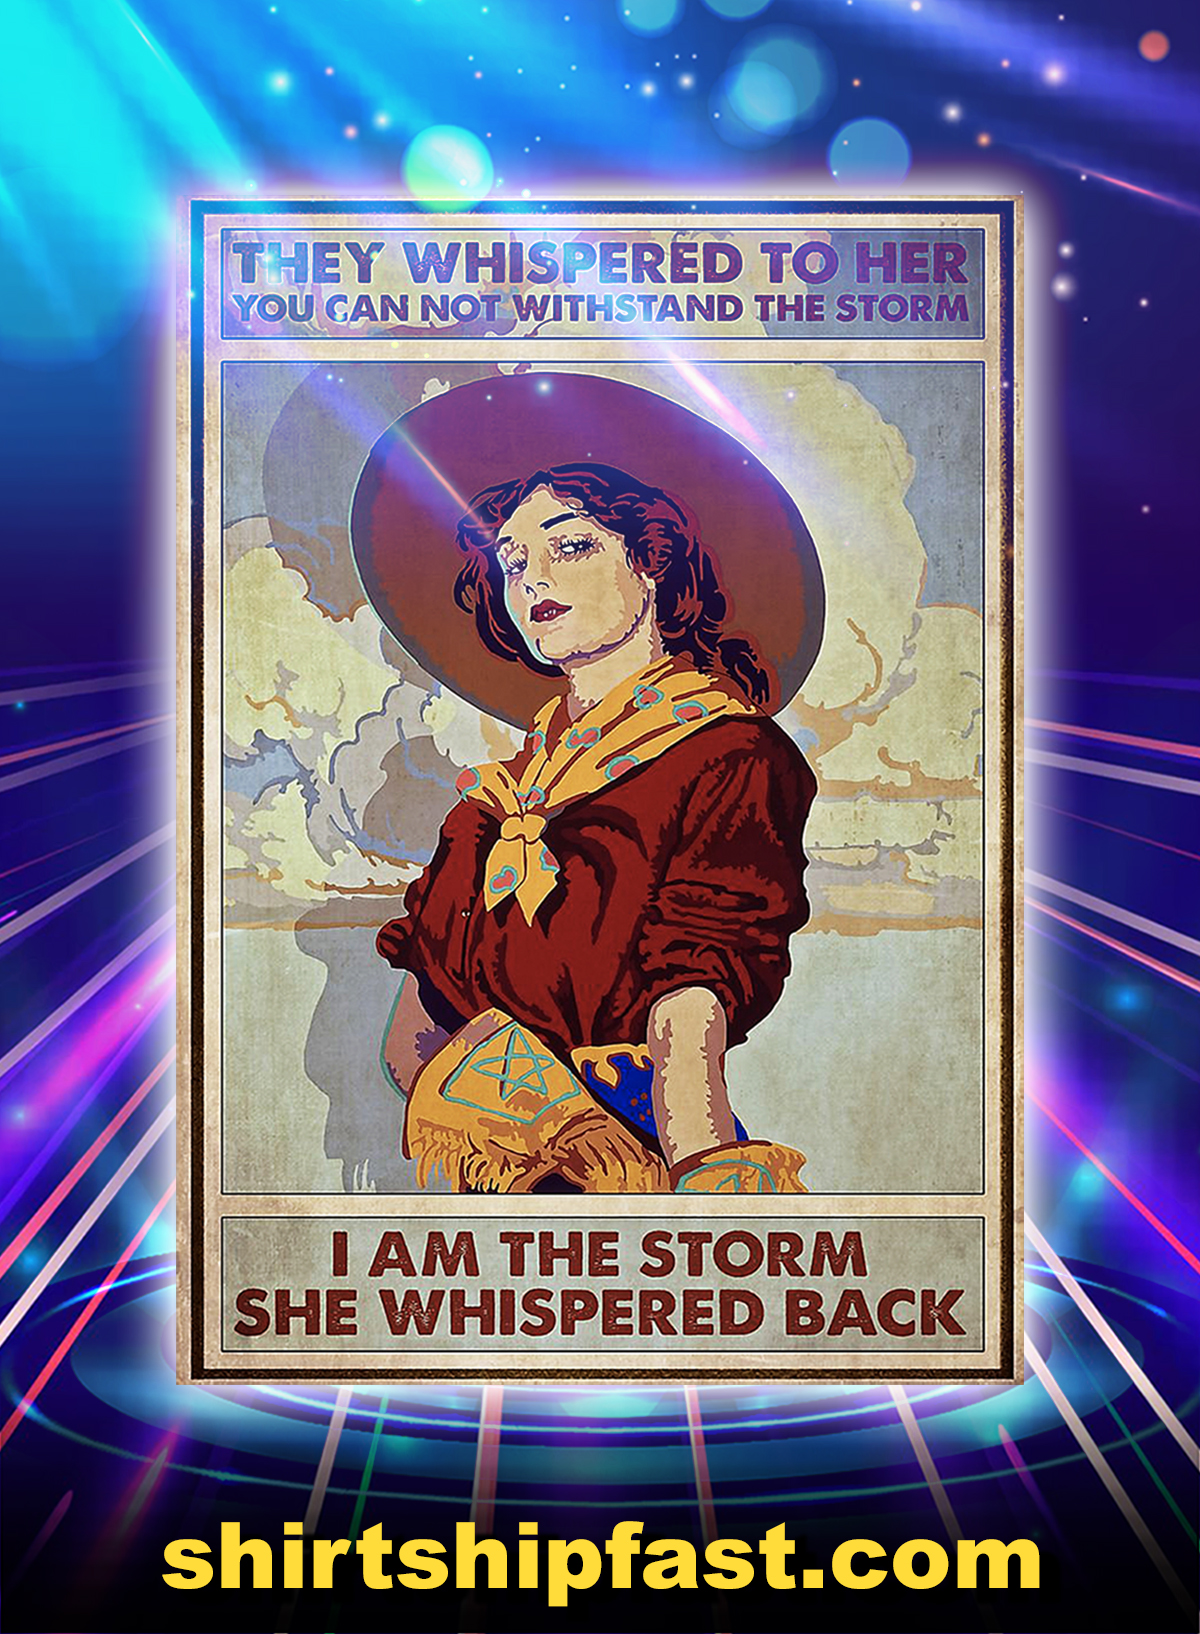 Cowgirl they whispered to her you can not withstand the storm poster - A1